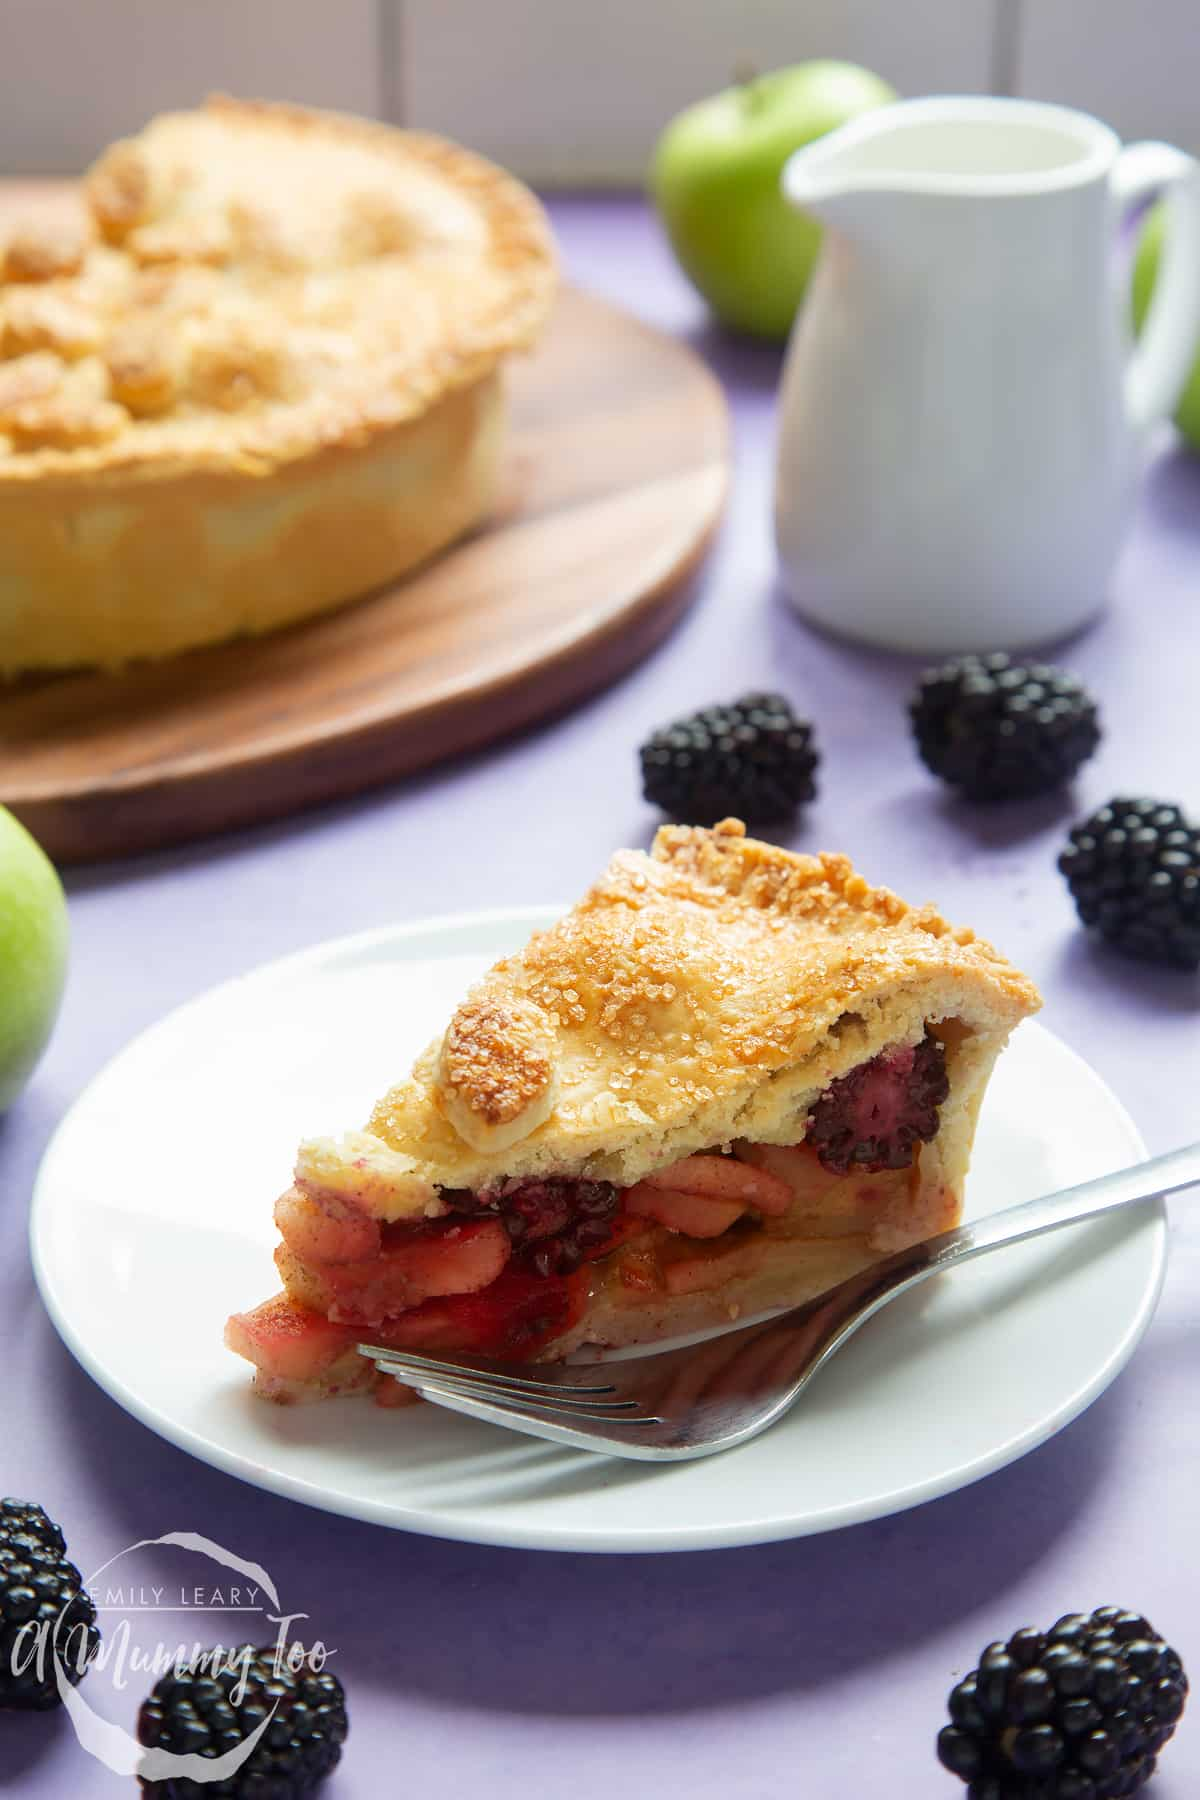 A slice of apple and blackberry pie on a white plate with a fork.